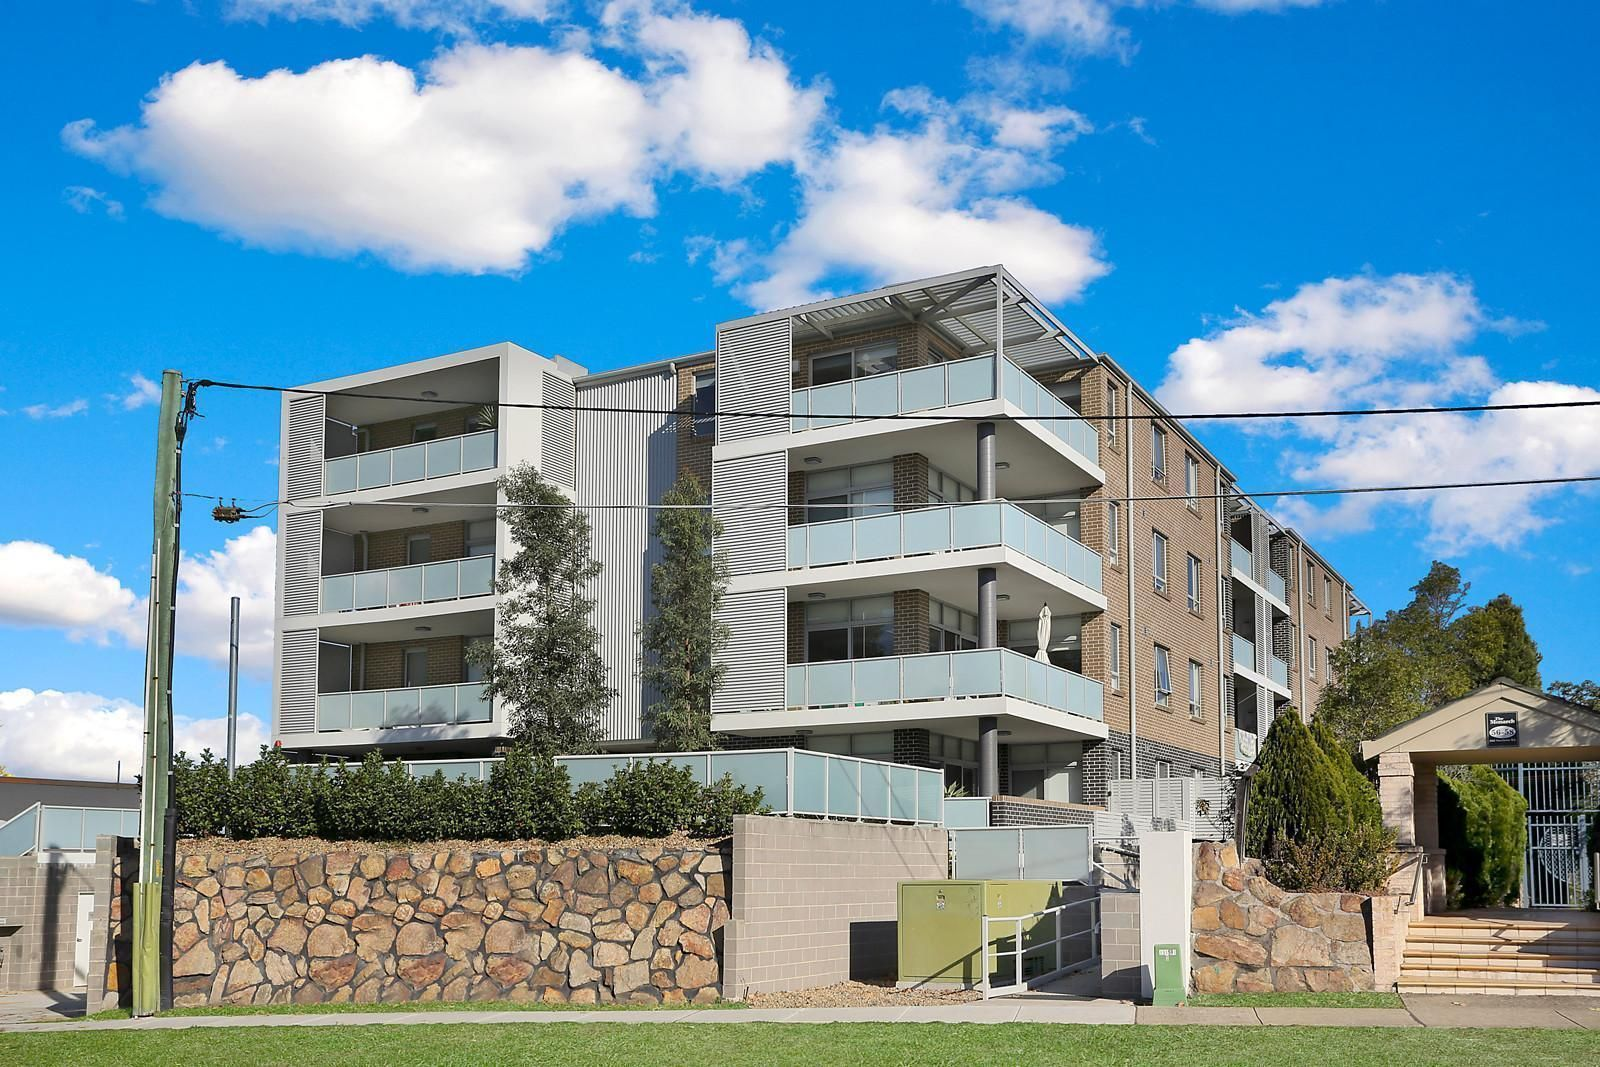 20/52 Old Northern Road, Baulkham Hills NSW 2153, Image 0